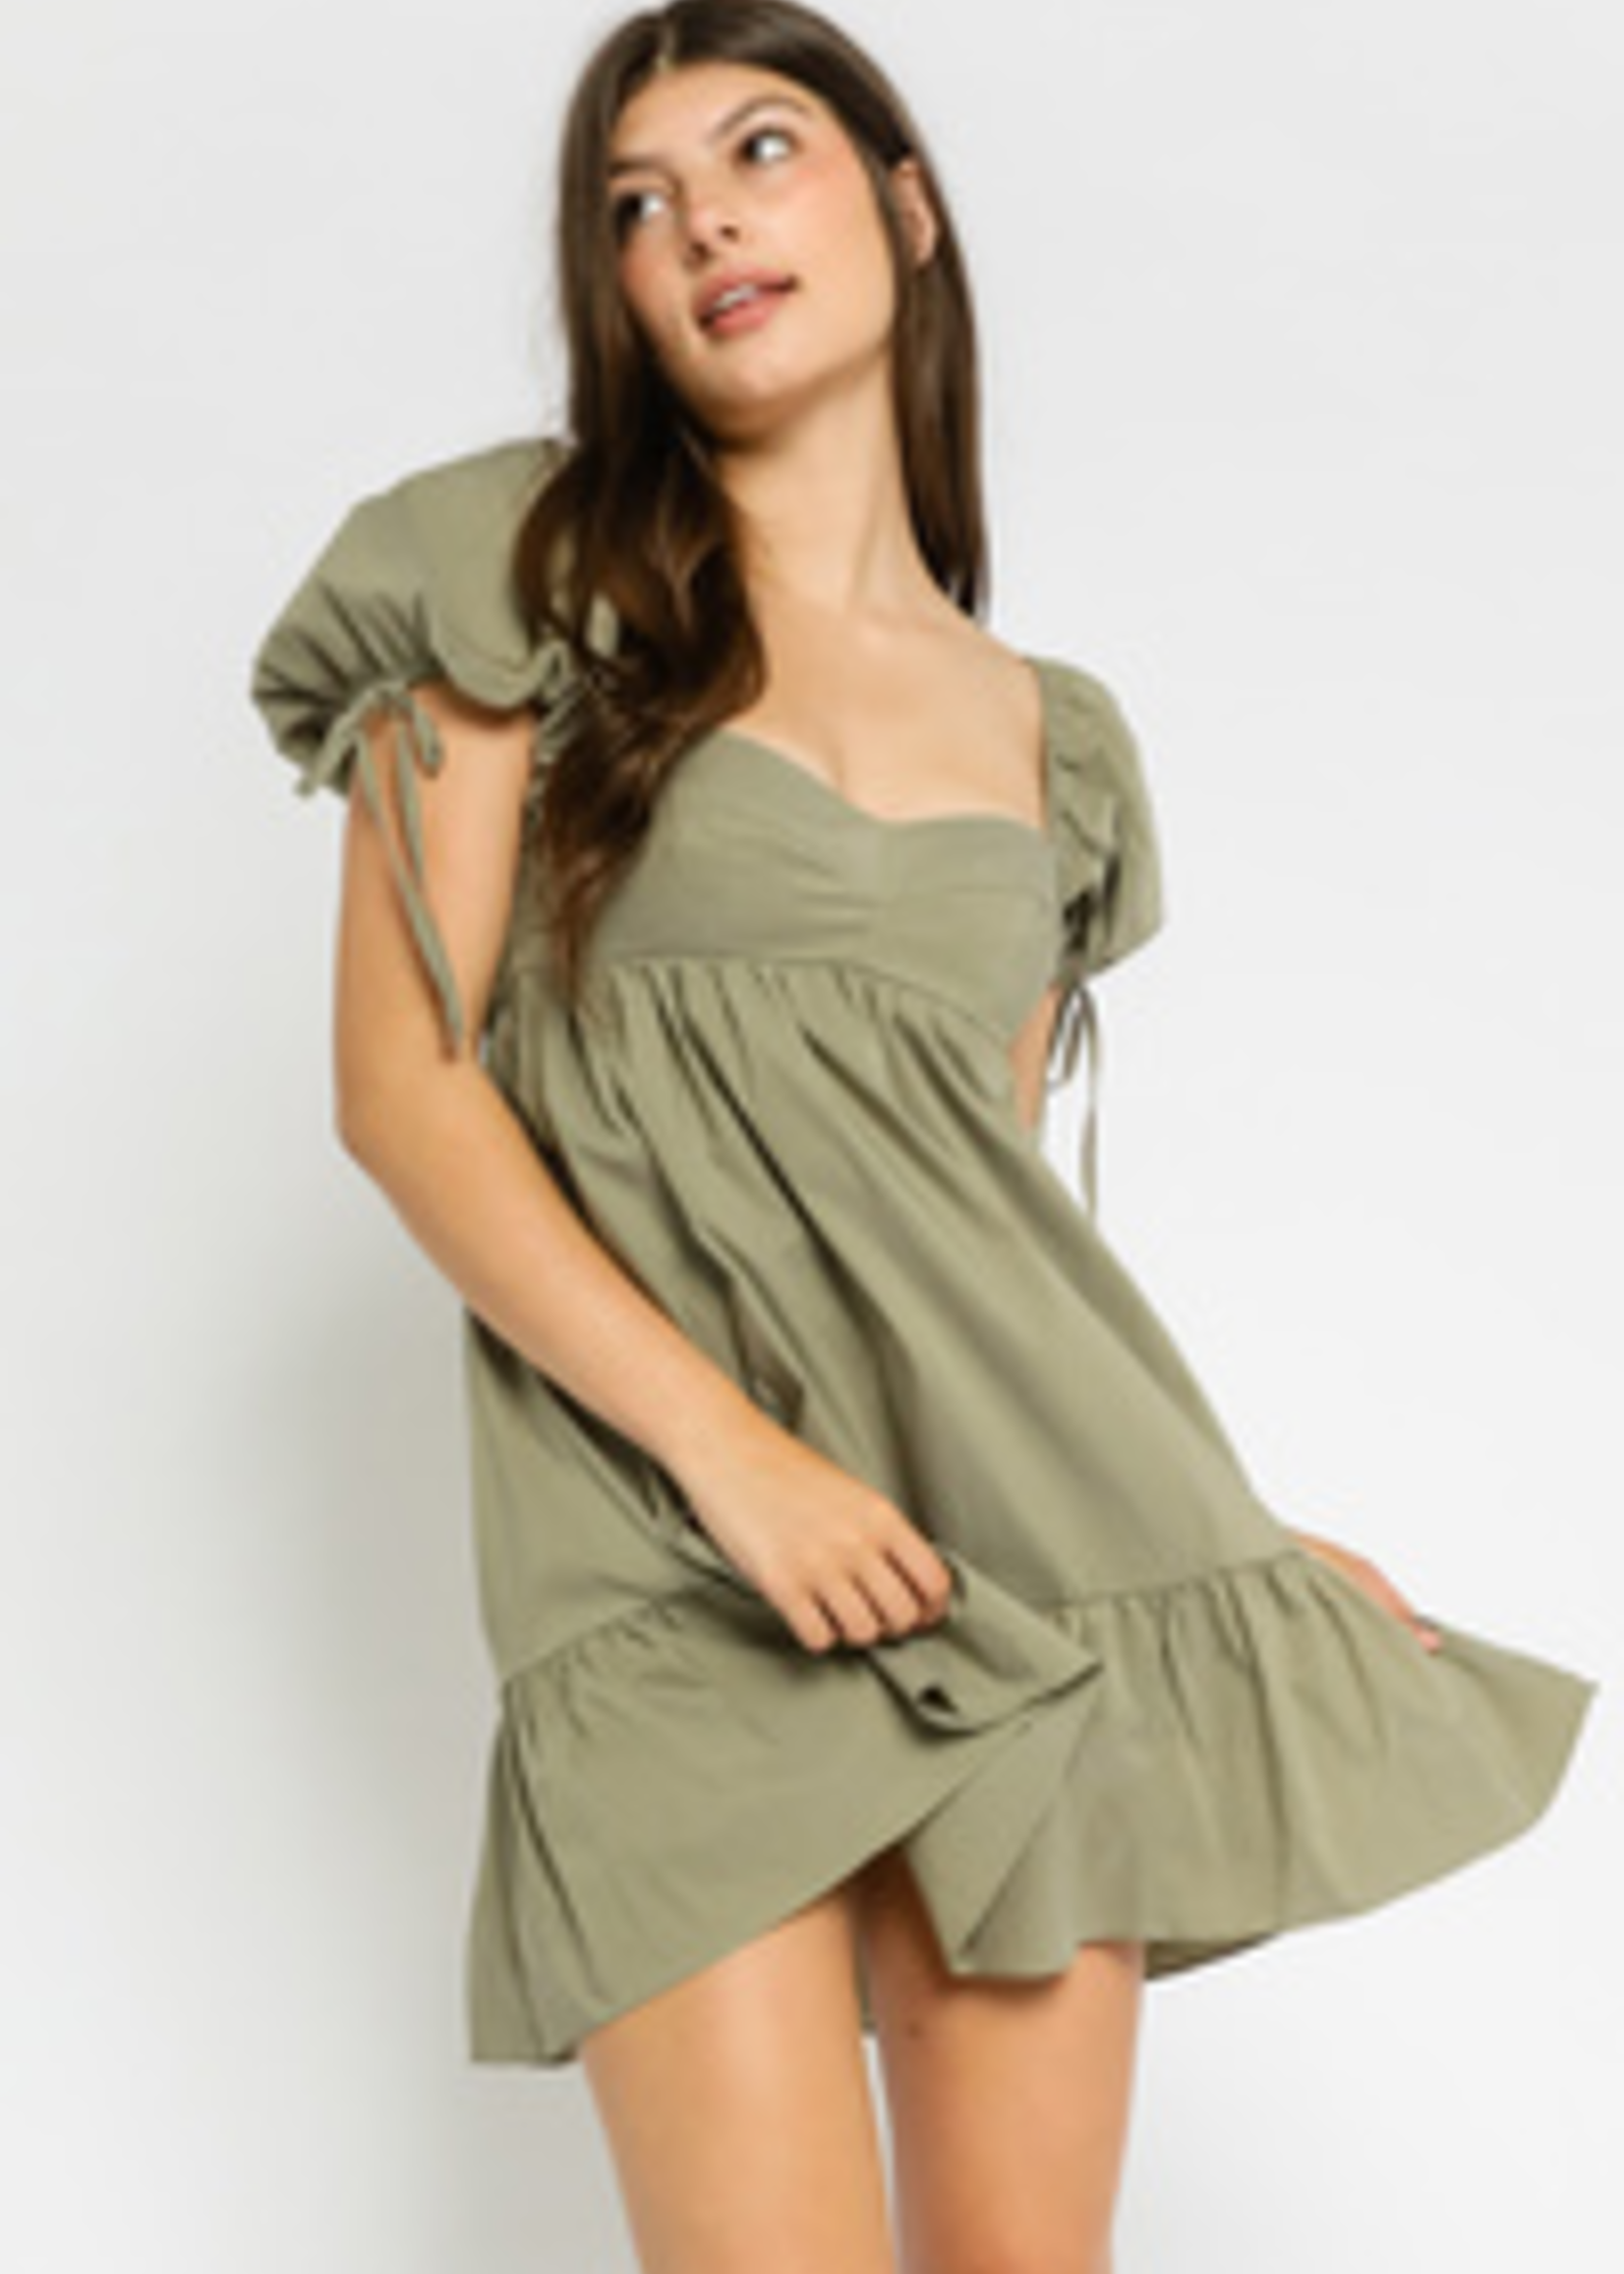 Fall With Me Olive Baby Doll Dress